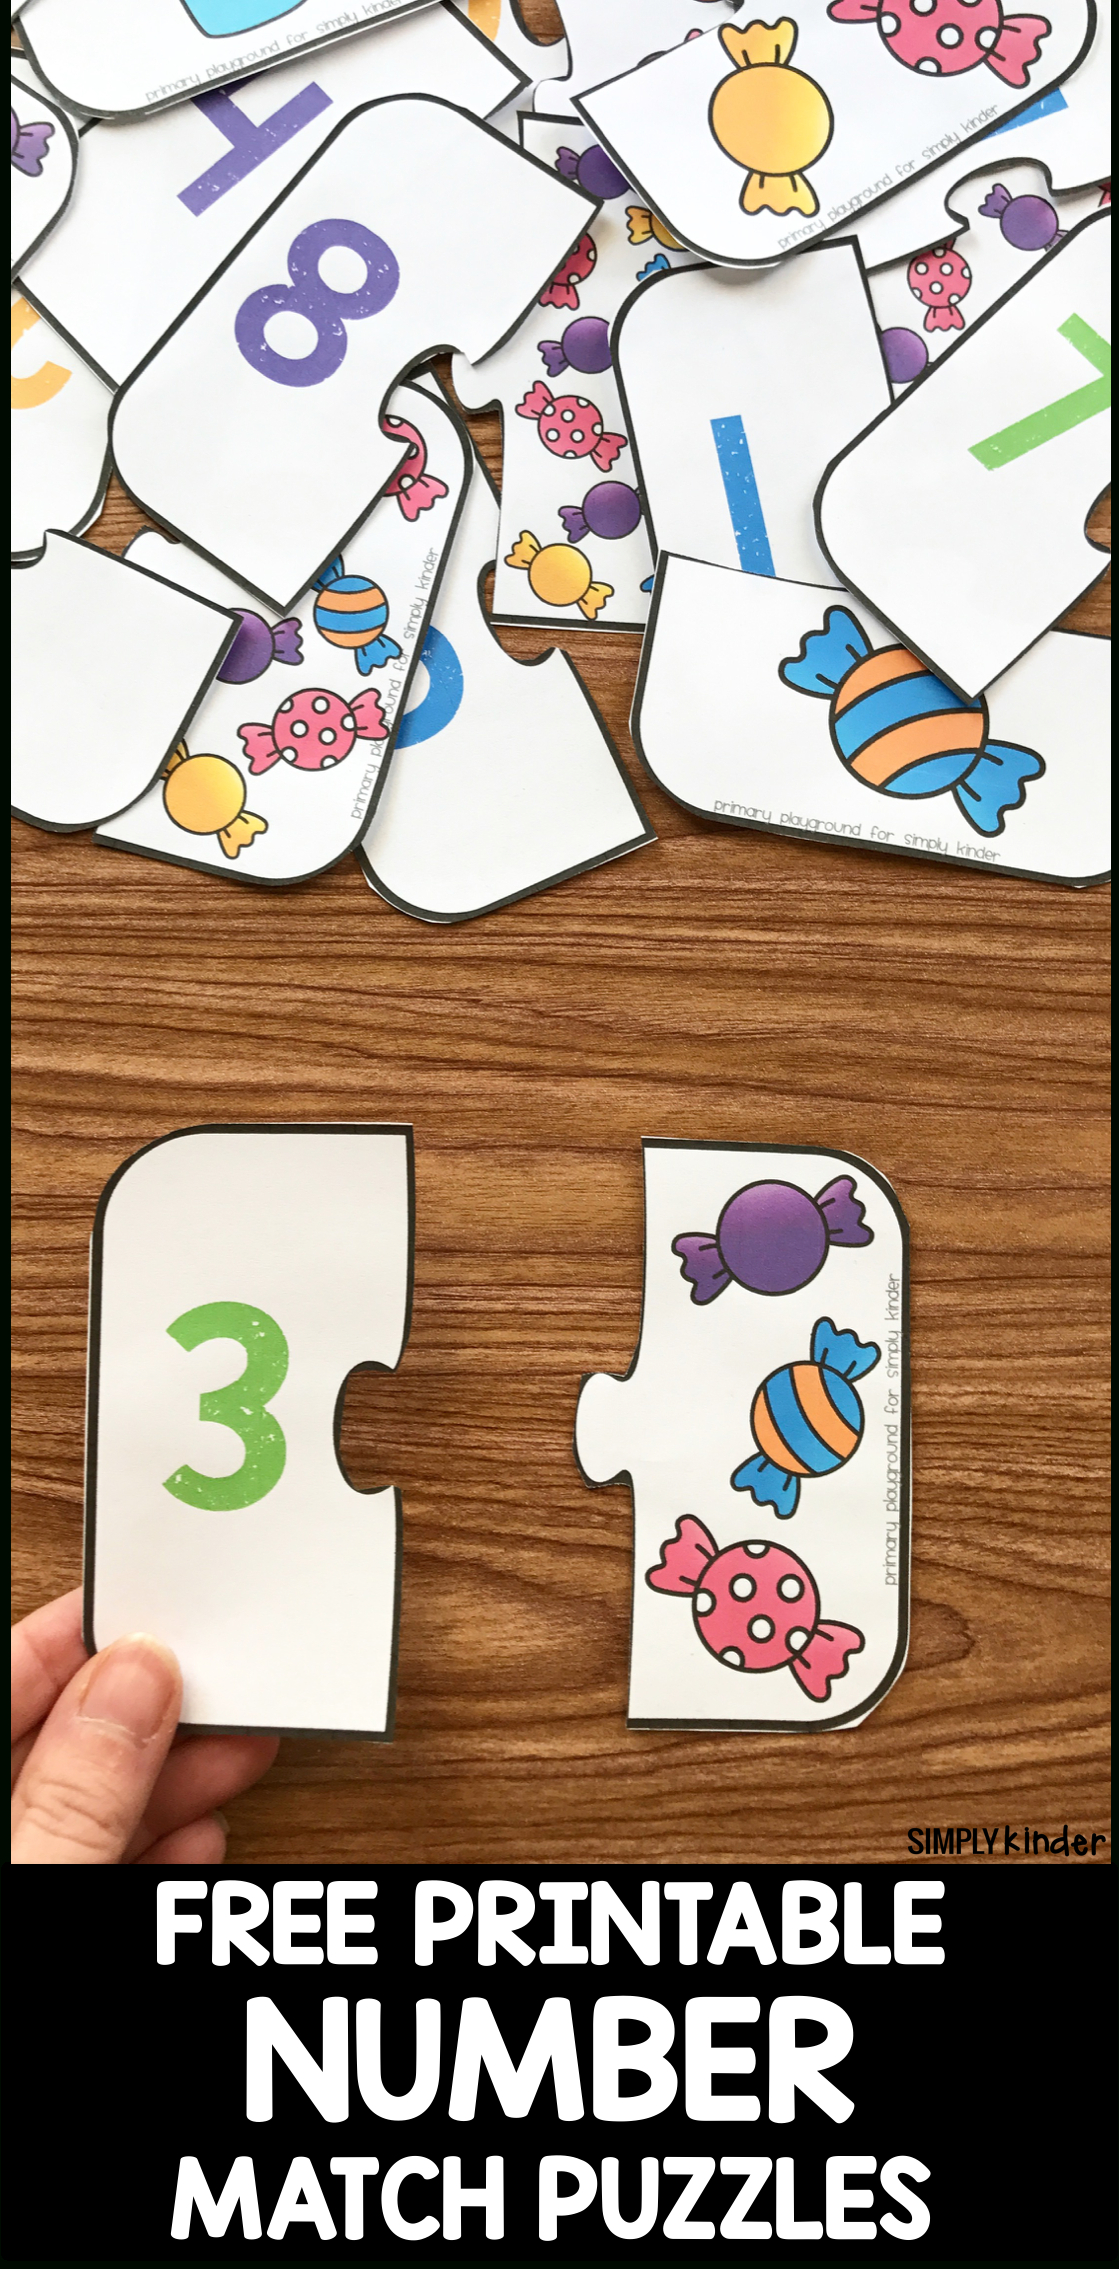 Free Printable Number Match Puzzles | Numbers | Simply Kinder, Free - Printable Matching Puzzle